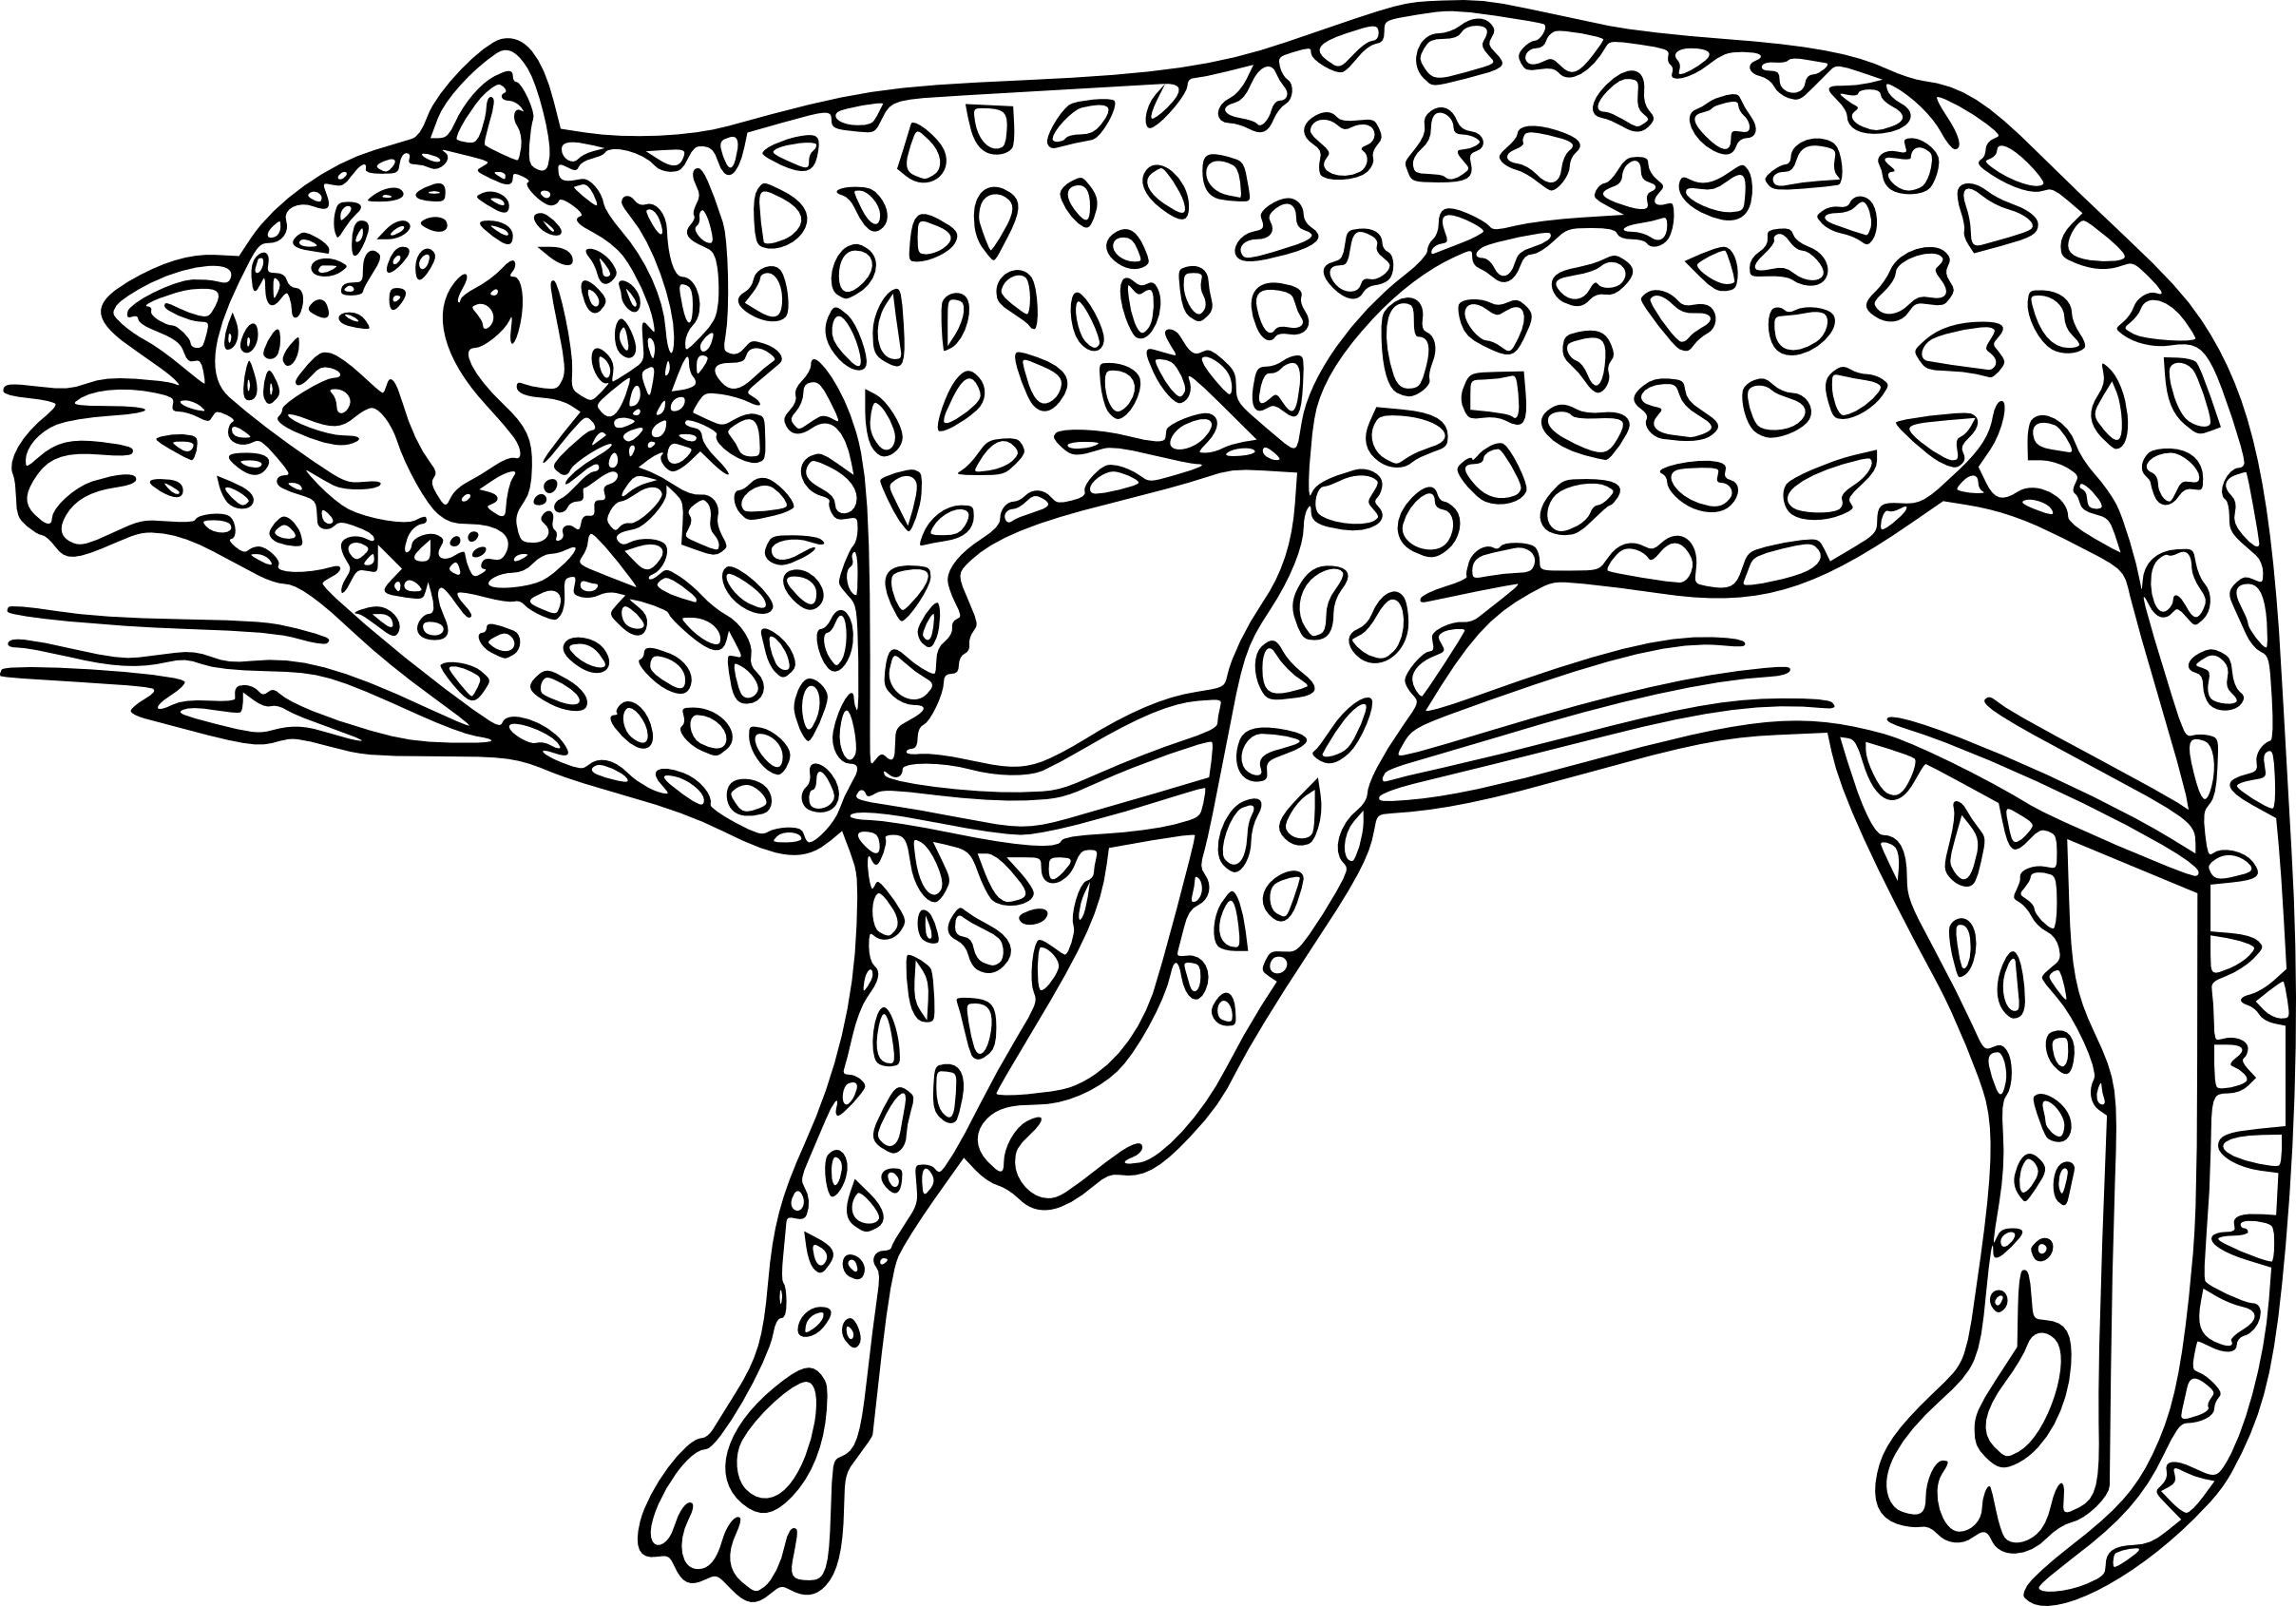 Leperd Coloring Pages For Adults